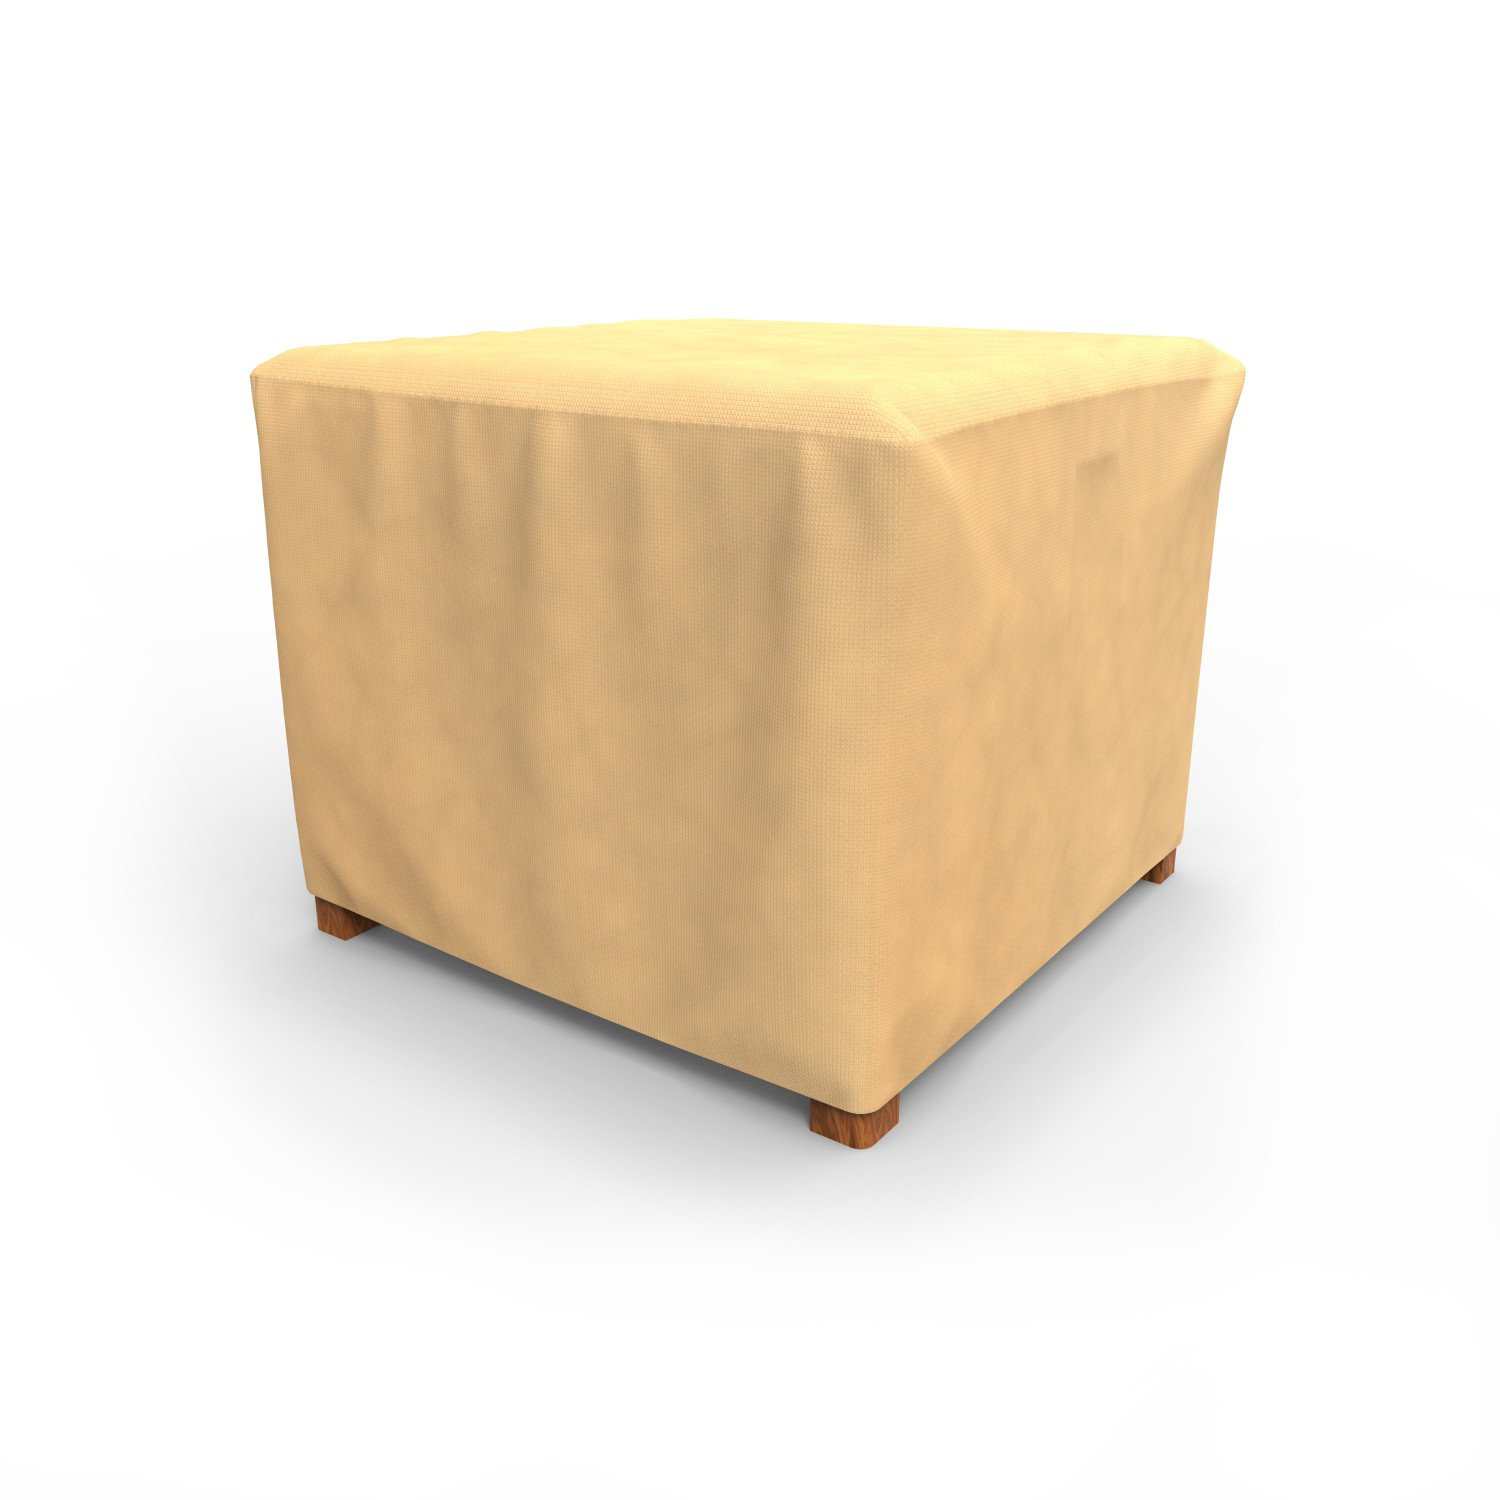 Budge All-Seasons Square Patio Table Cover / Ottoman Cover, Small (Tan)